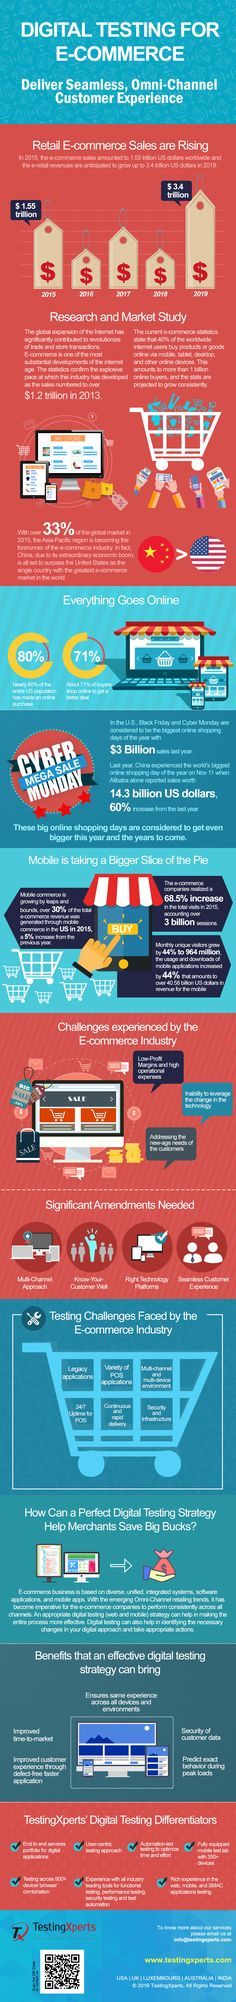 #Infographic: The E-commerce industry always demands innovation and exclusivity to draw the attention of the customers. The infographic displays the challenges faced by this industry and how to overcome the challenges by adopting appropriate digital testing solutions. Read more